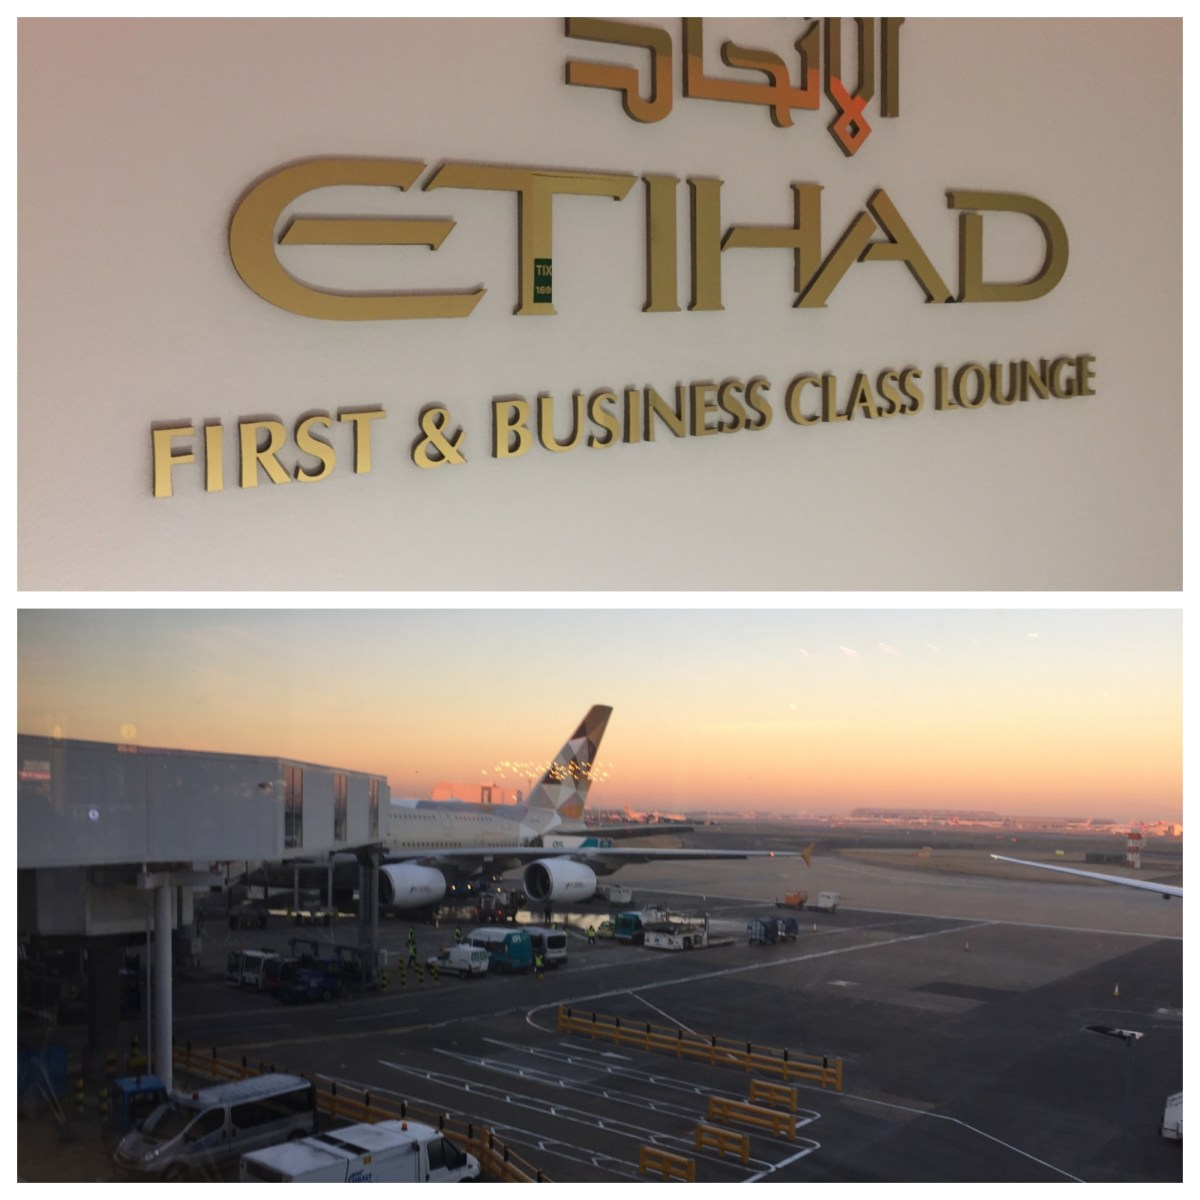 REVIEW: Etihad First and Business Lounge, Heathrow Terminal 4